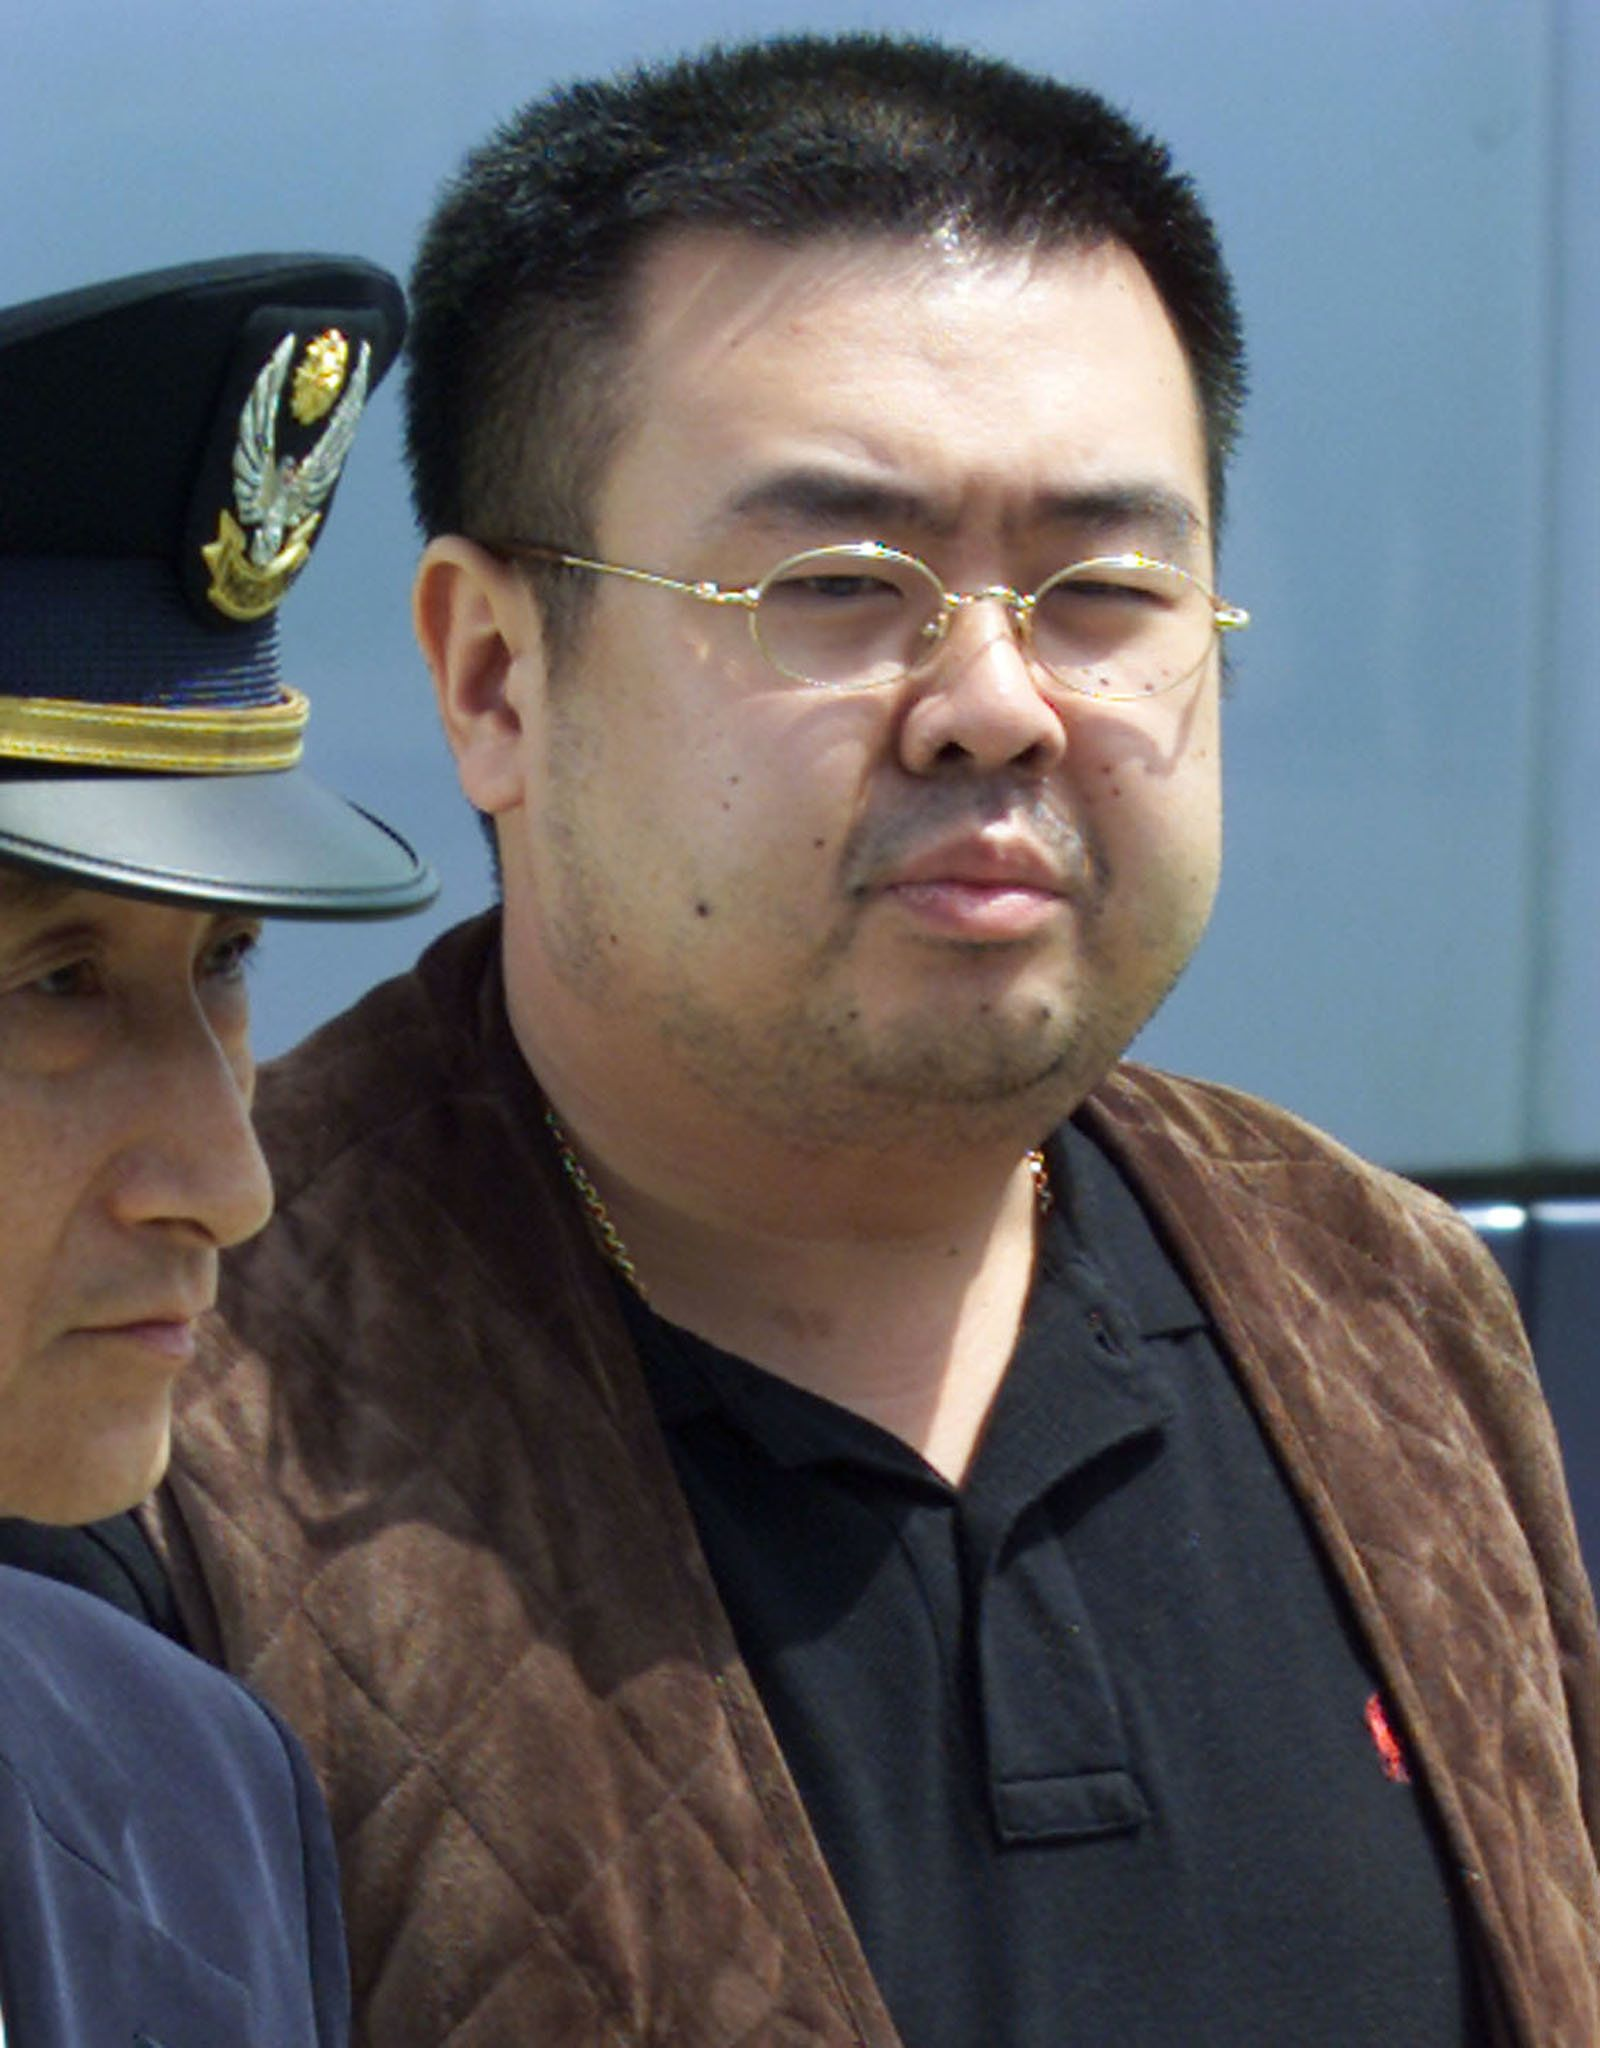 Kim Jong Nam, eldest son of North Korean leader Kim Jong-il and half-brother to the current leader...